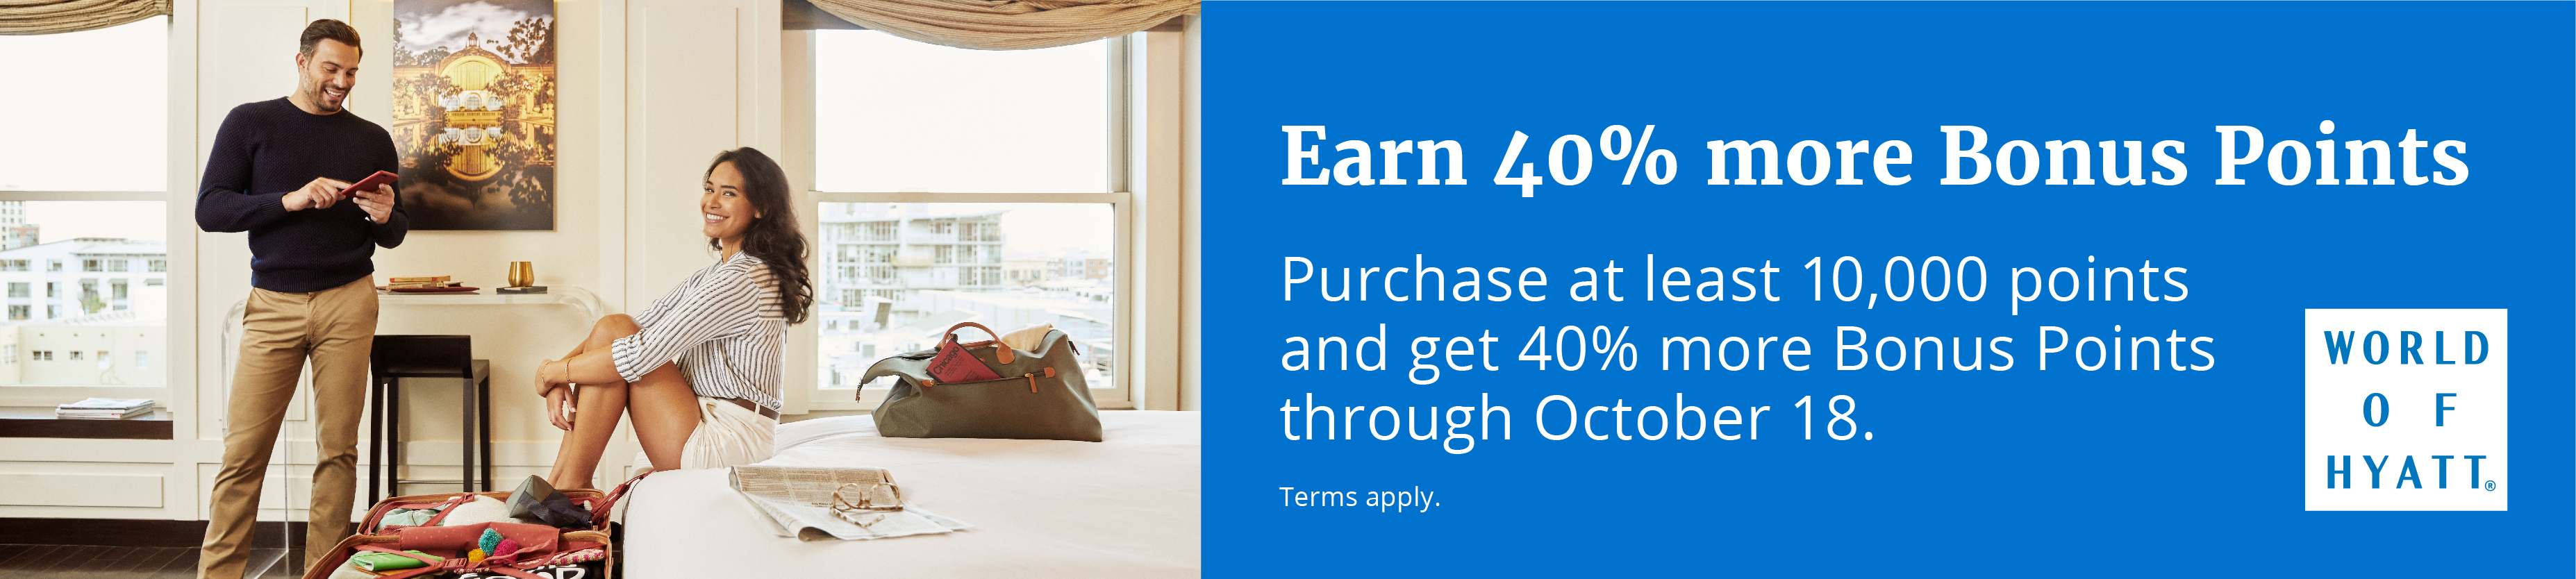 Earn 40% more Bonus Points! Purchase at least 10,000 points and get 40% more Bonus Points through October 18. Terms apply.